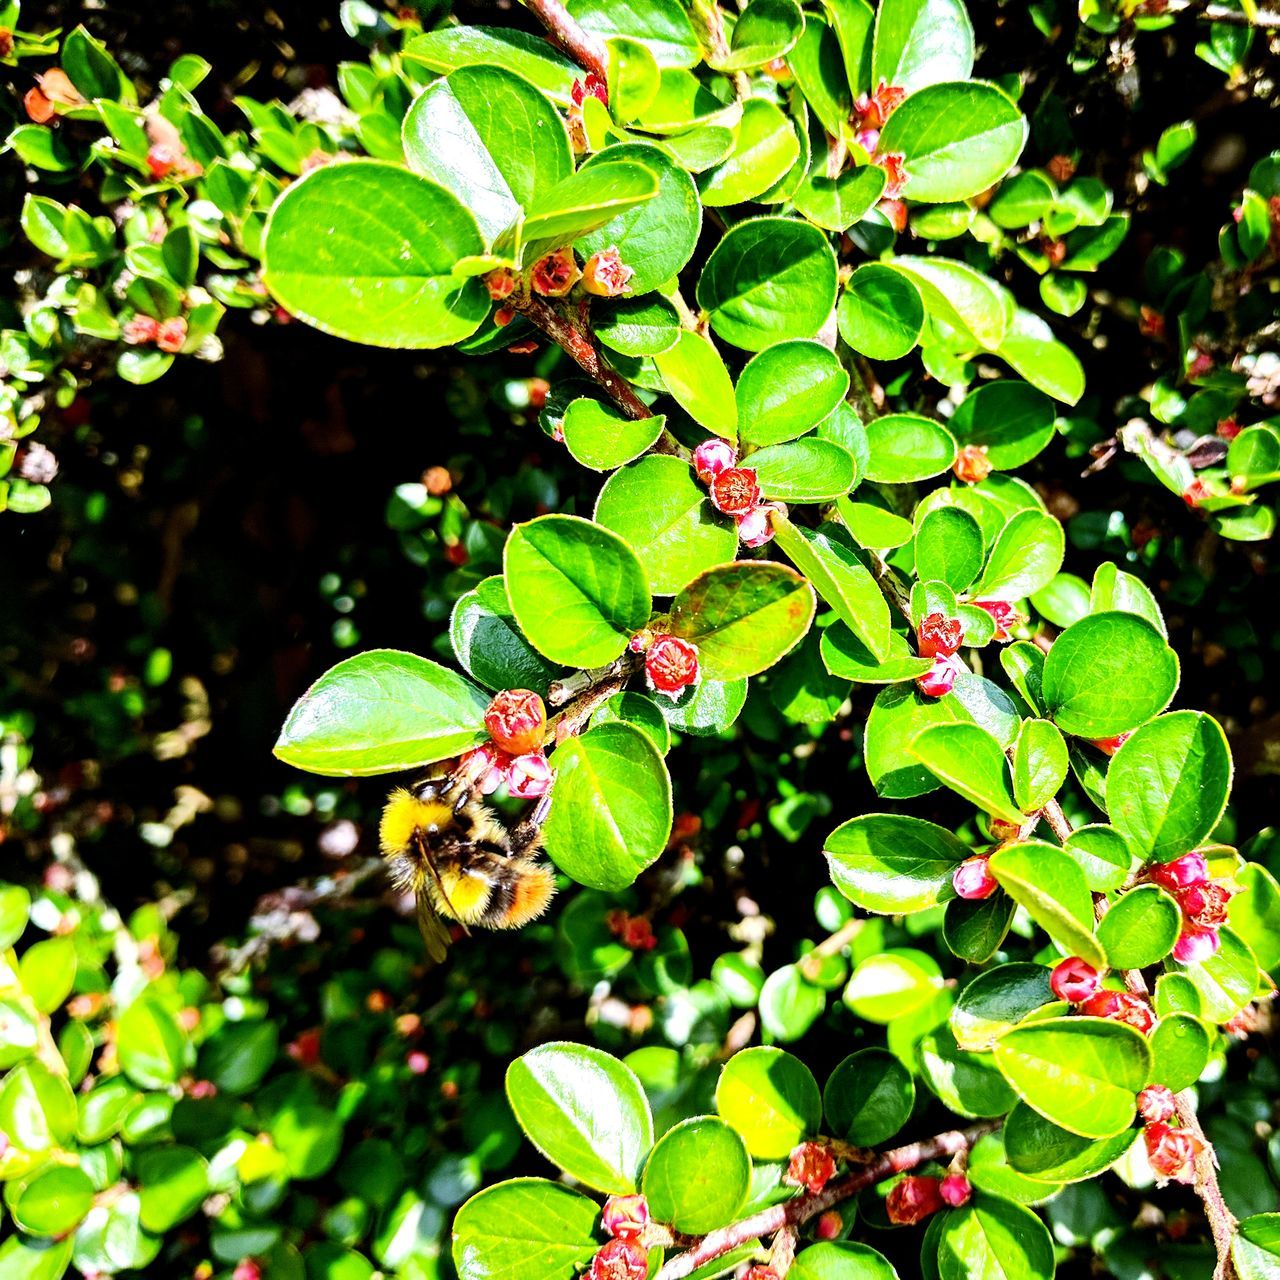 Worker Bee Green Color Leaf Nature Growth Plant Beauty In Nature Outdoors No People Day Branch Close-up One Animal Freshness Animal Themes Green Leaves Green Bush Red Flower Black And Yellow  Endangered Animals In The Wild Animal Wildlife Foraging Pollen Buzzing Bee